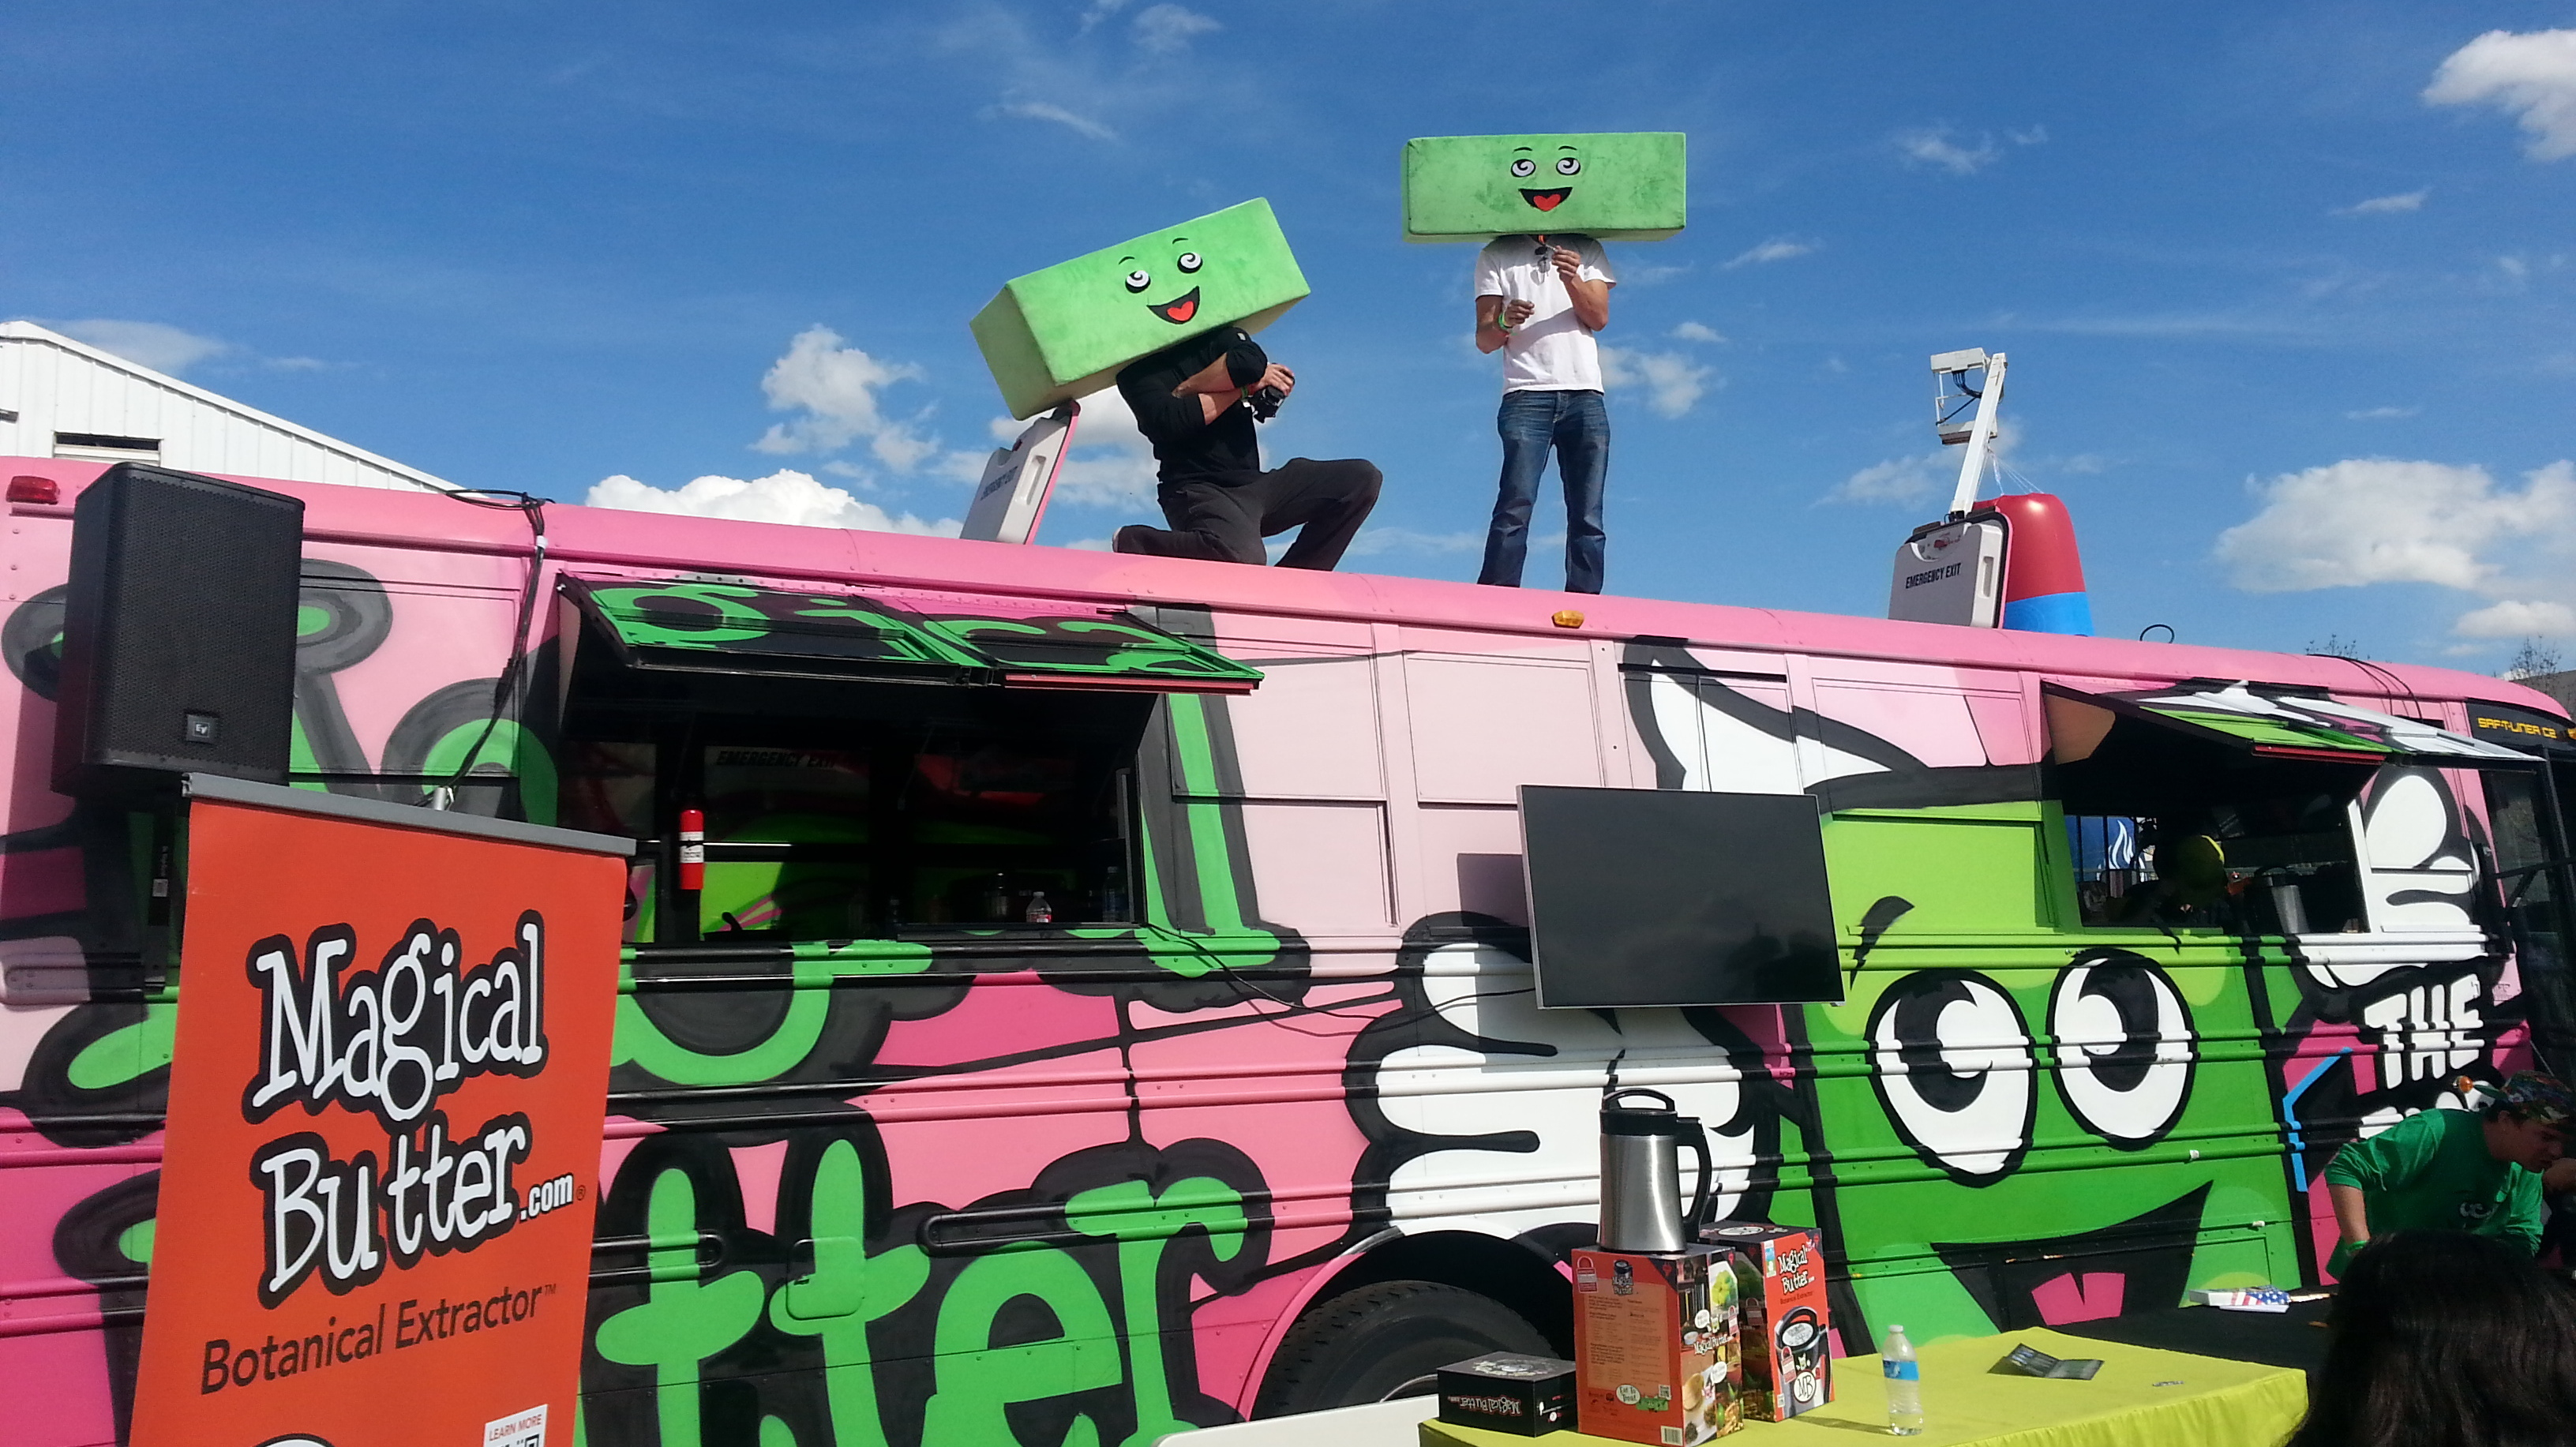 The Latest Food Truck Theme Is Marijuana For Lunch